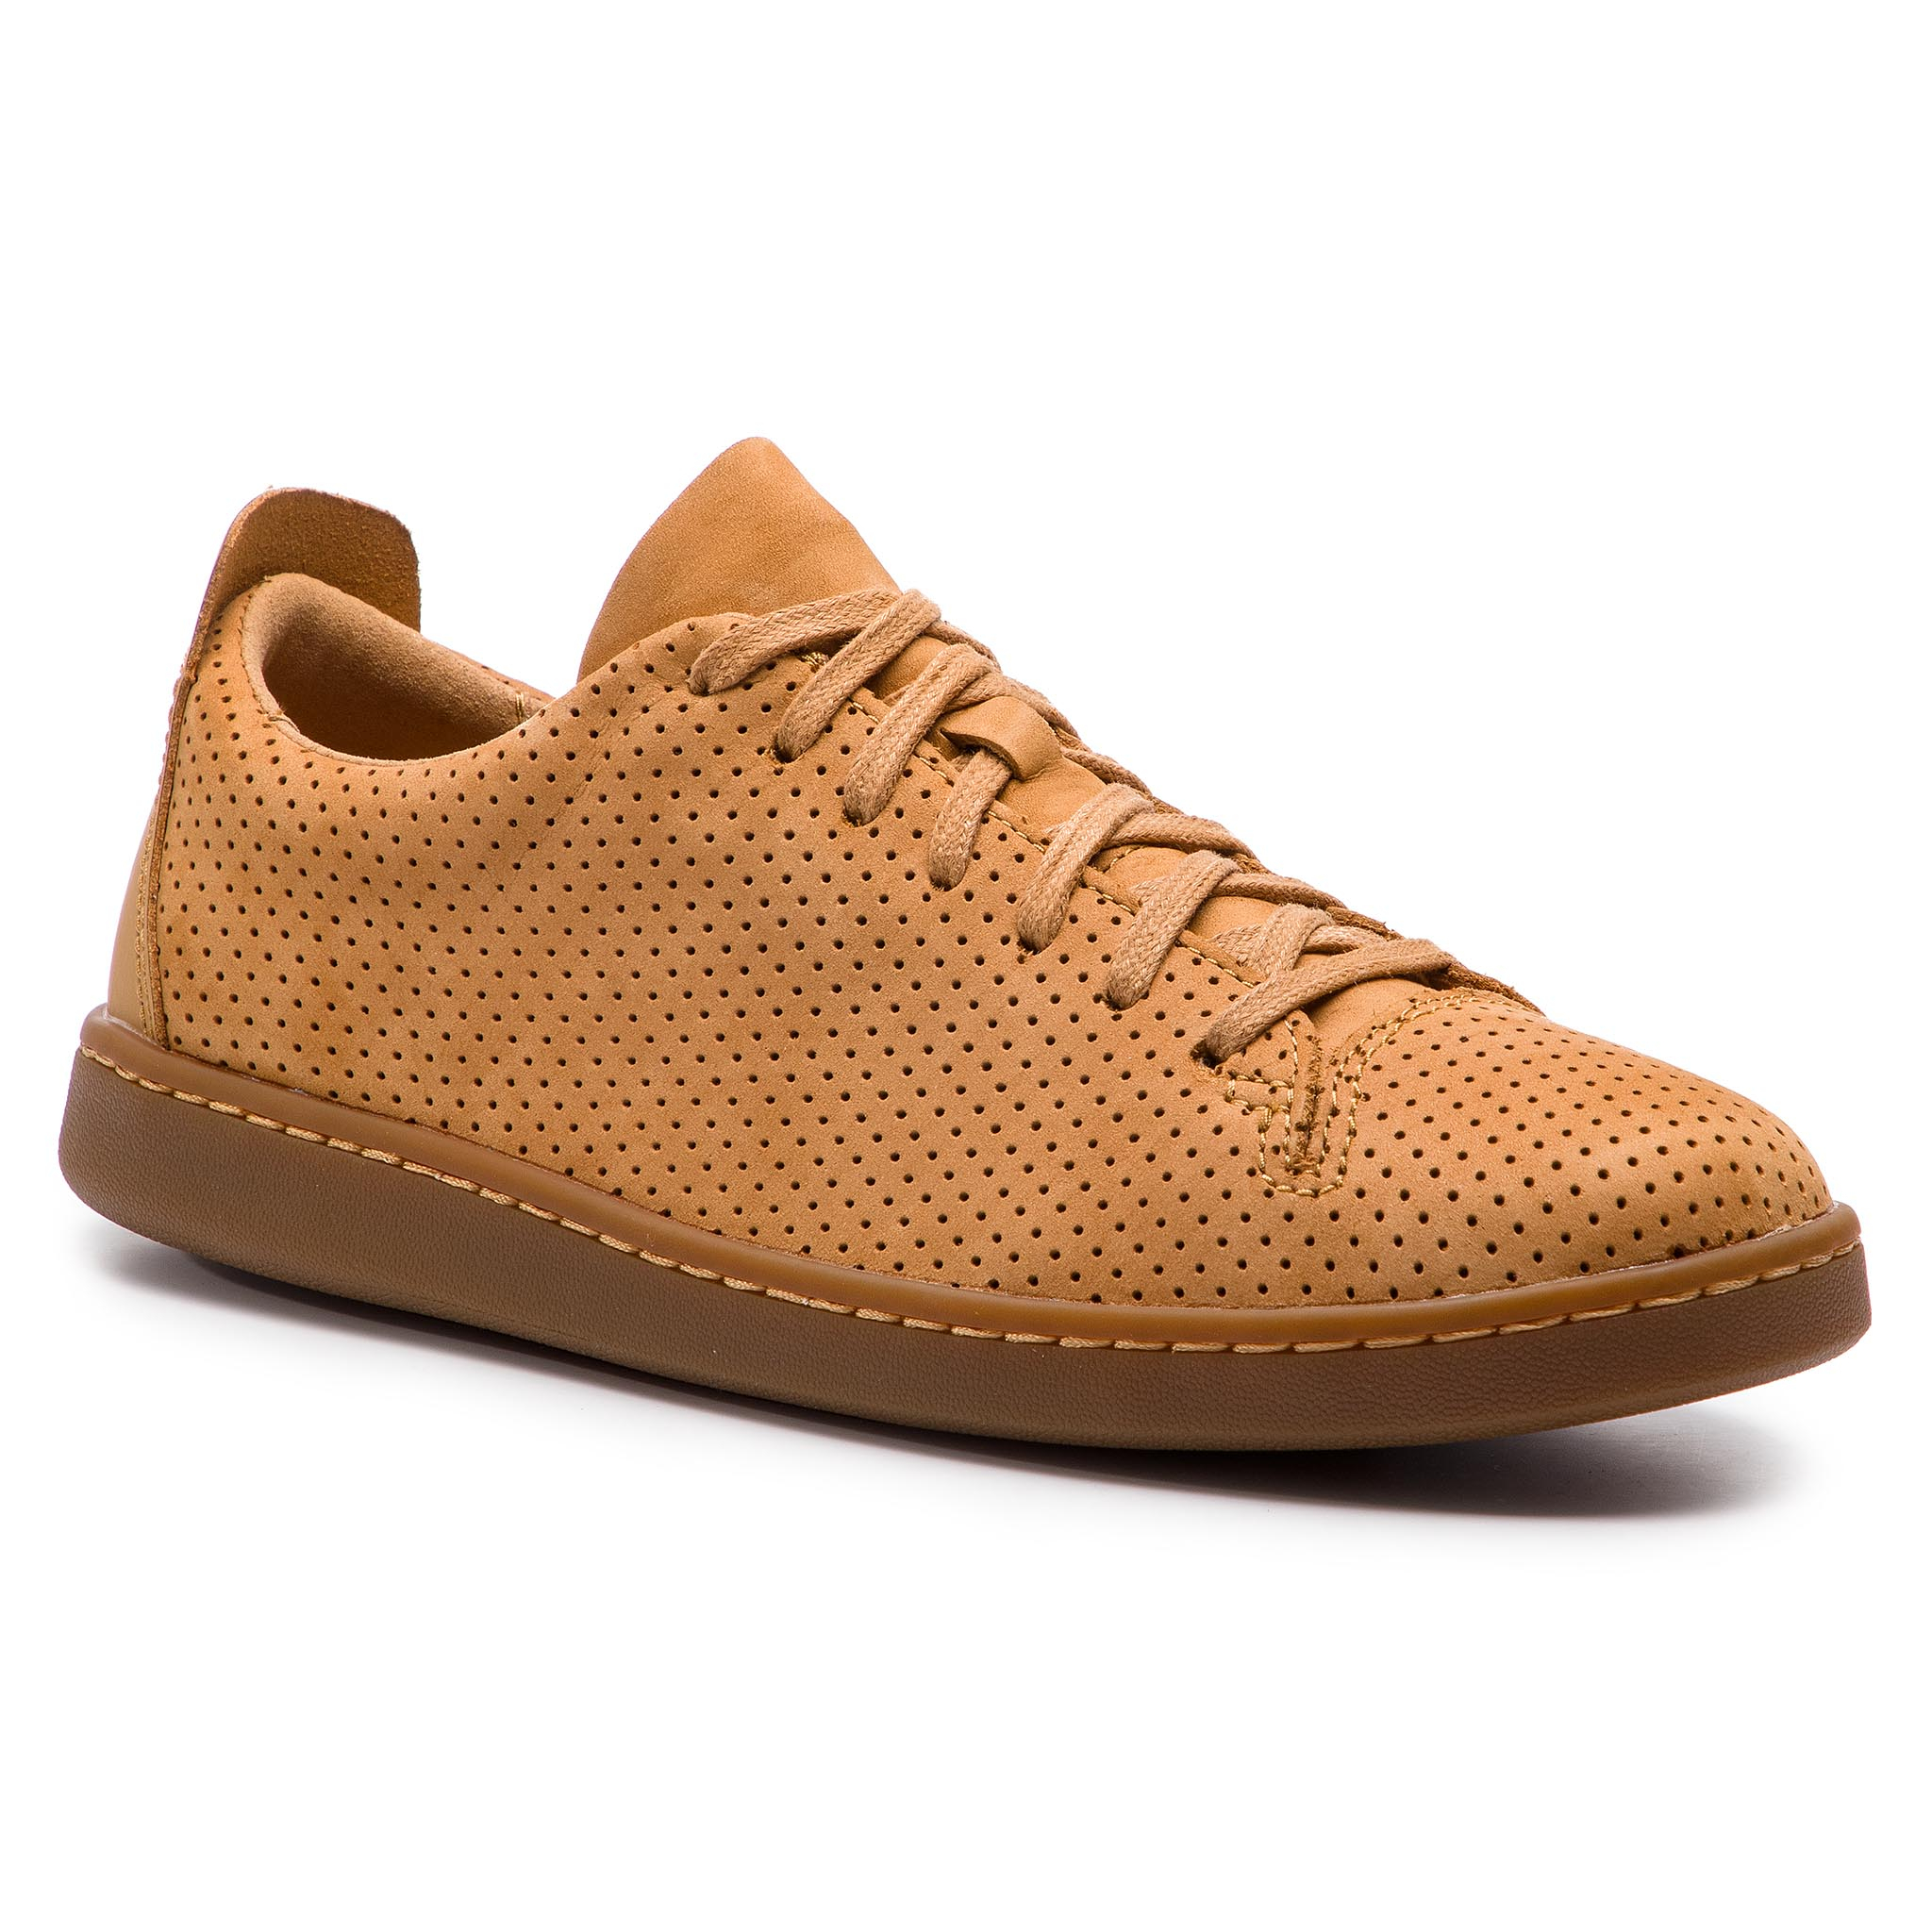 Sneakers CLARKS - Nathan Limit 261416187 Light Tan Nubuck